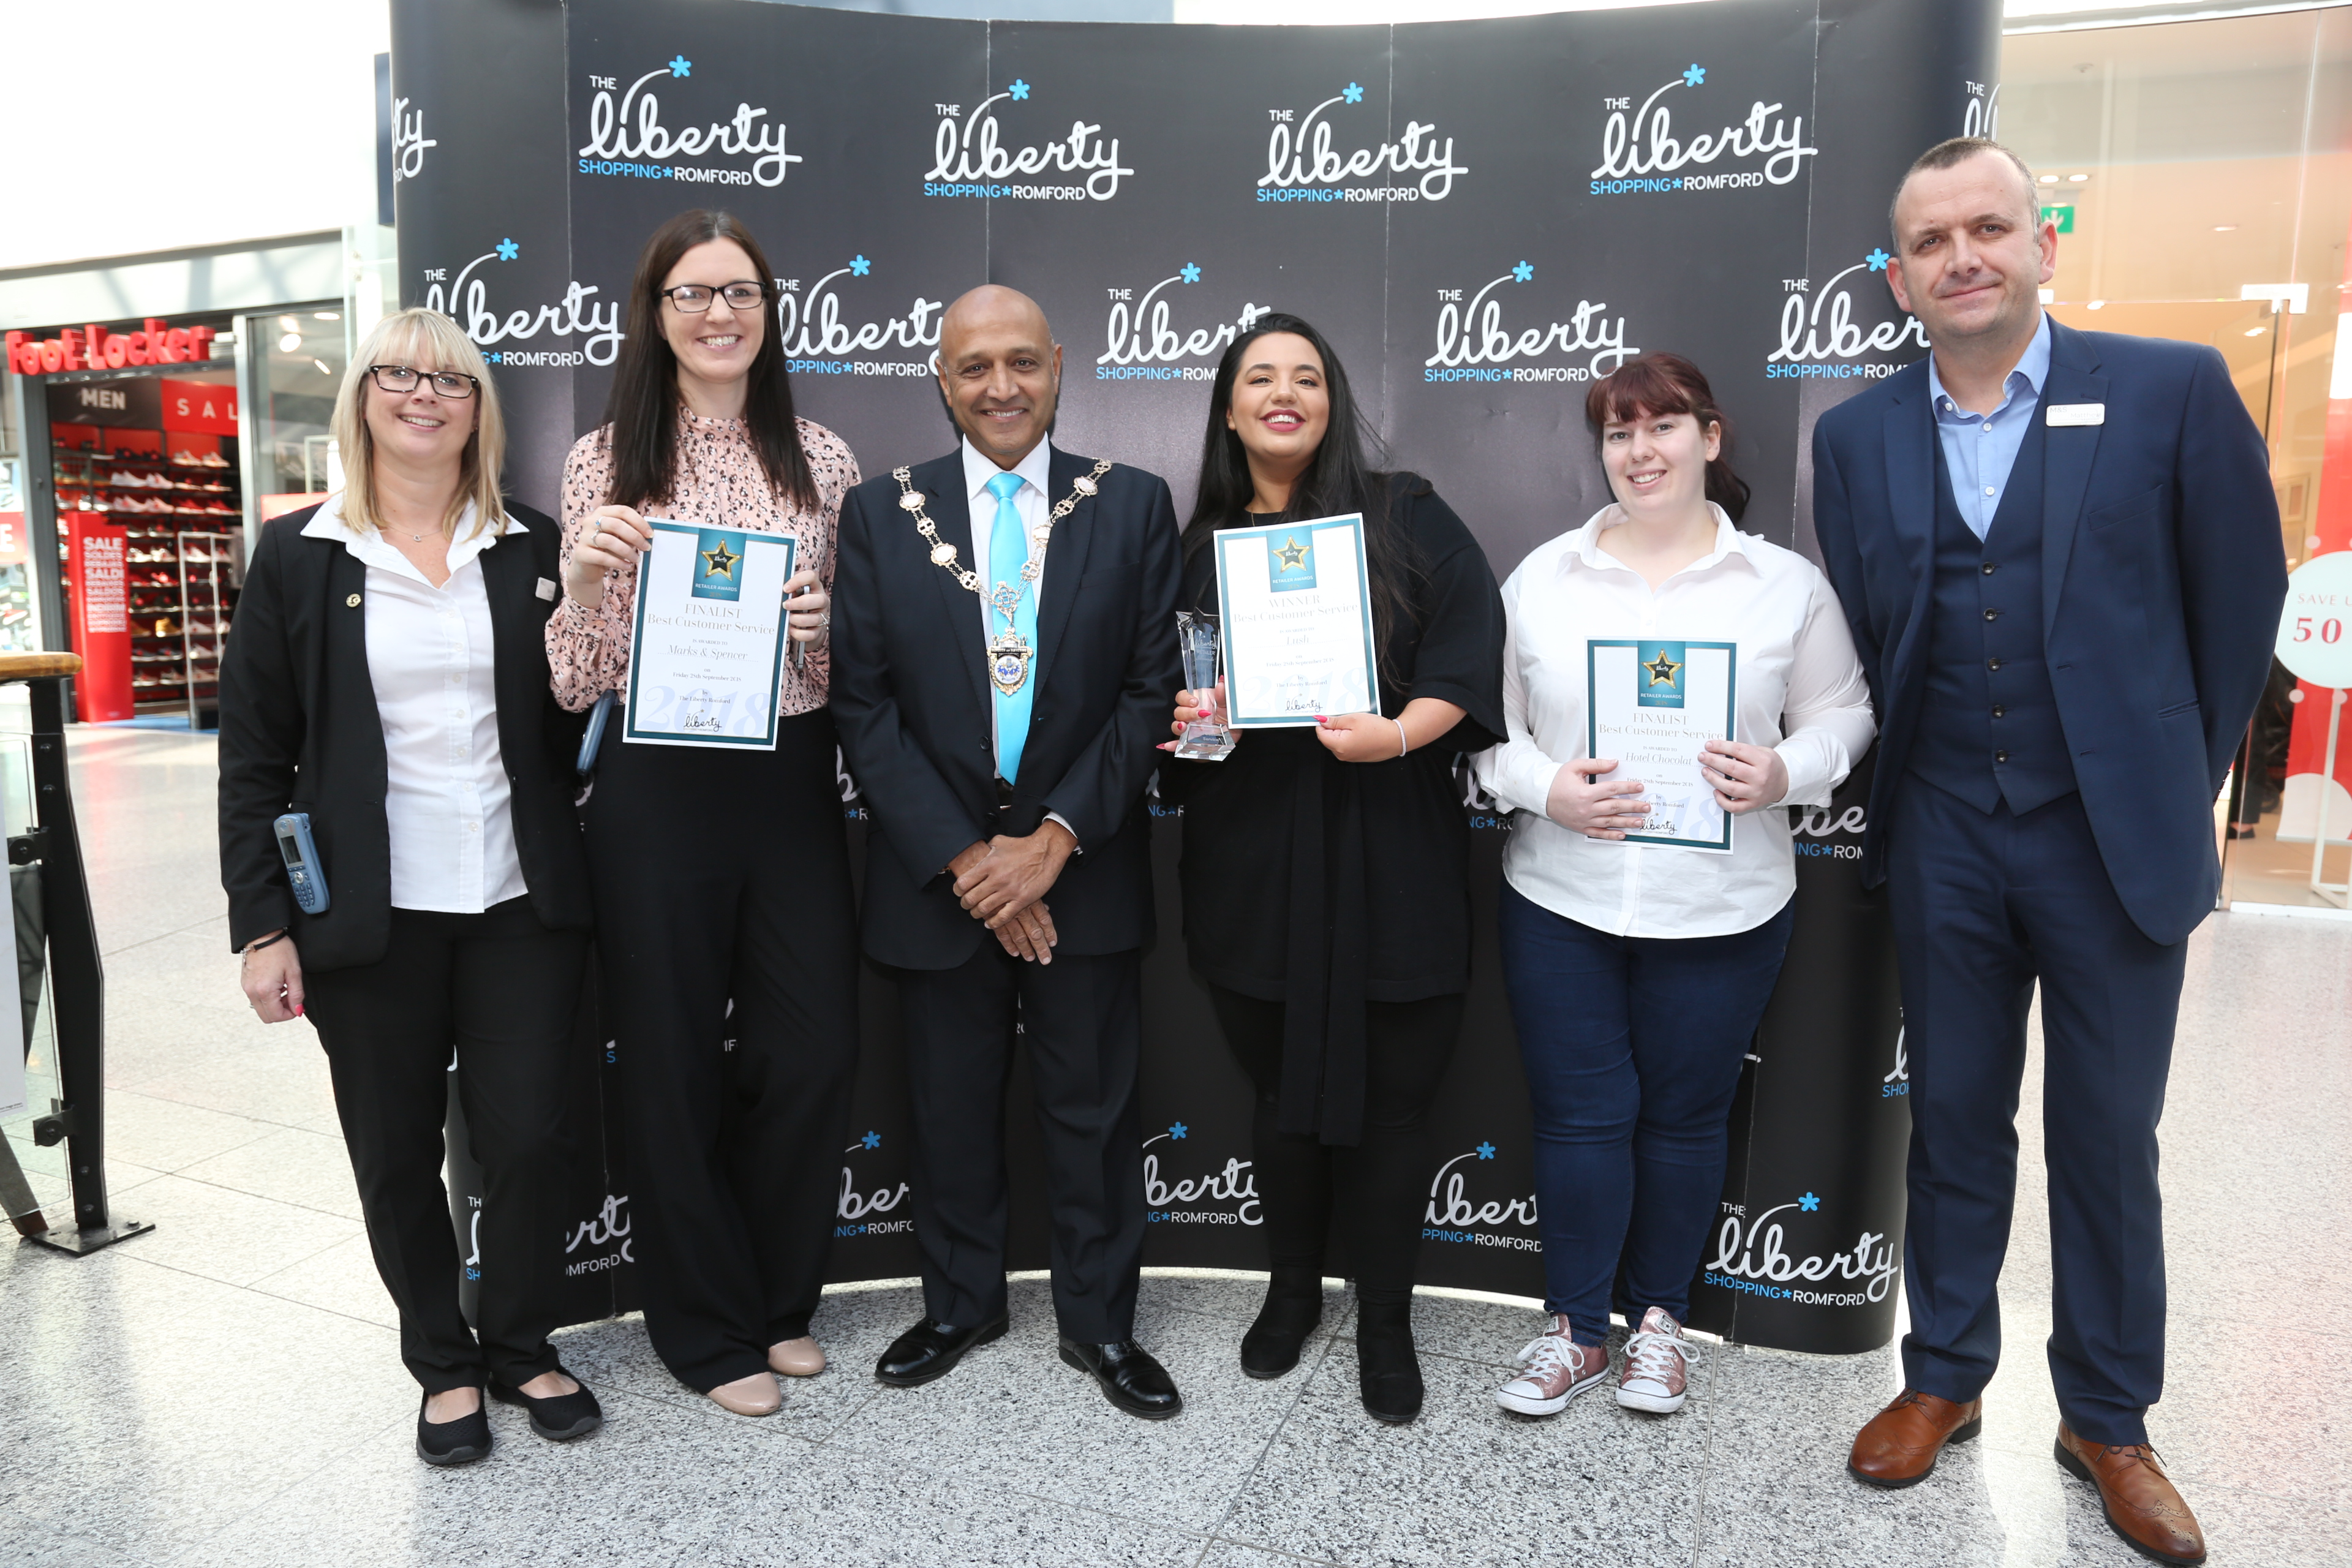 Image: S.Rowse. Customer Service Award, Finalists M&S Staff Wendy Liddard, Ellie Chamberlain , Mayor Councillor Dilip Patel, winner Sofia Kasapi from Lush, finalist Keeley Holland - Davies from Hotel Chocolat, finalist Matthew Opie from Marks & Spencer